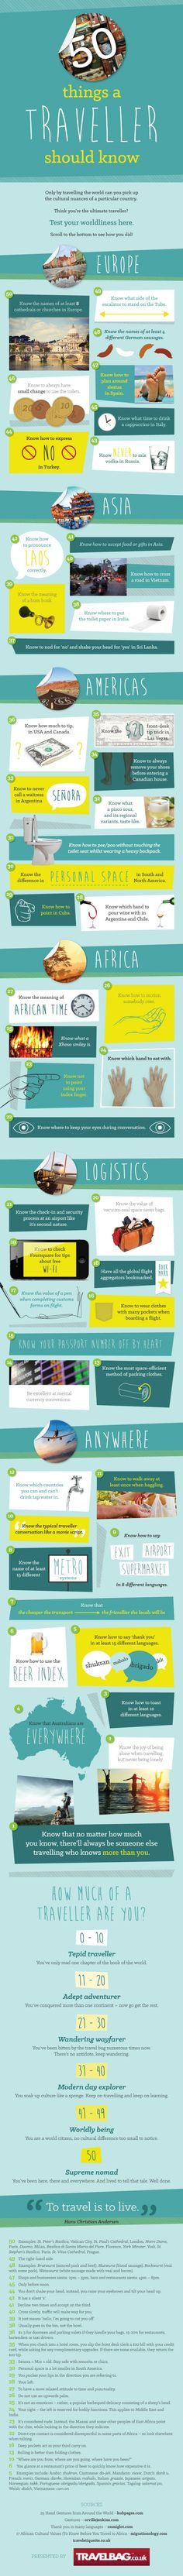 50 Things a Traveller Should Know. Love this! Especially number 4! #travel #Australia #TravelGuide #infographic